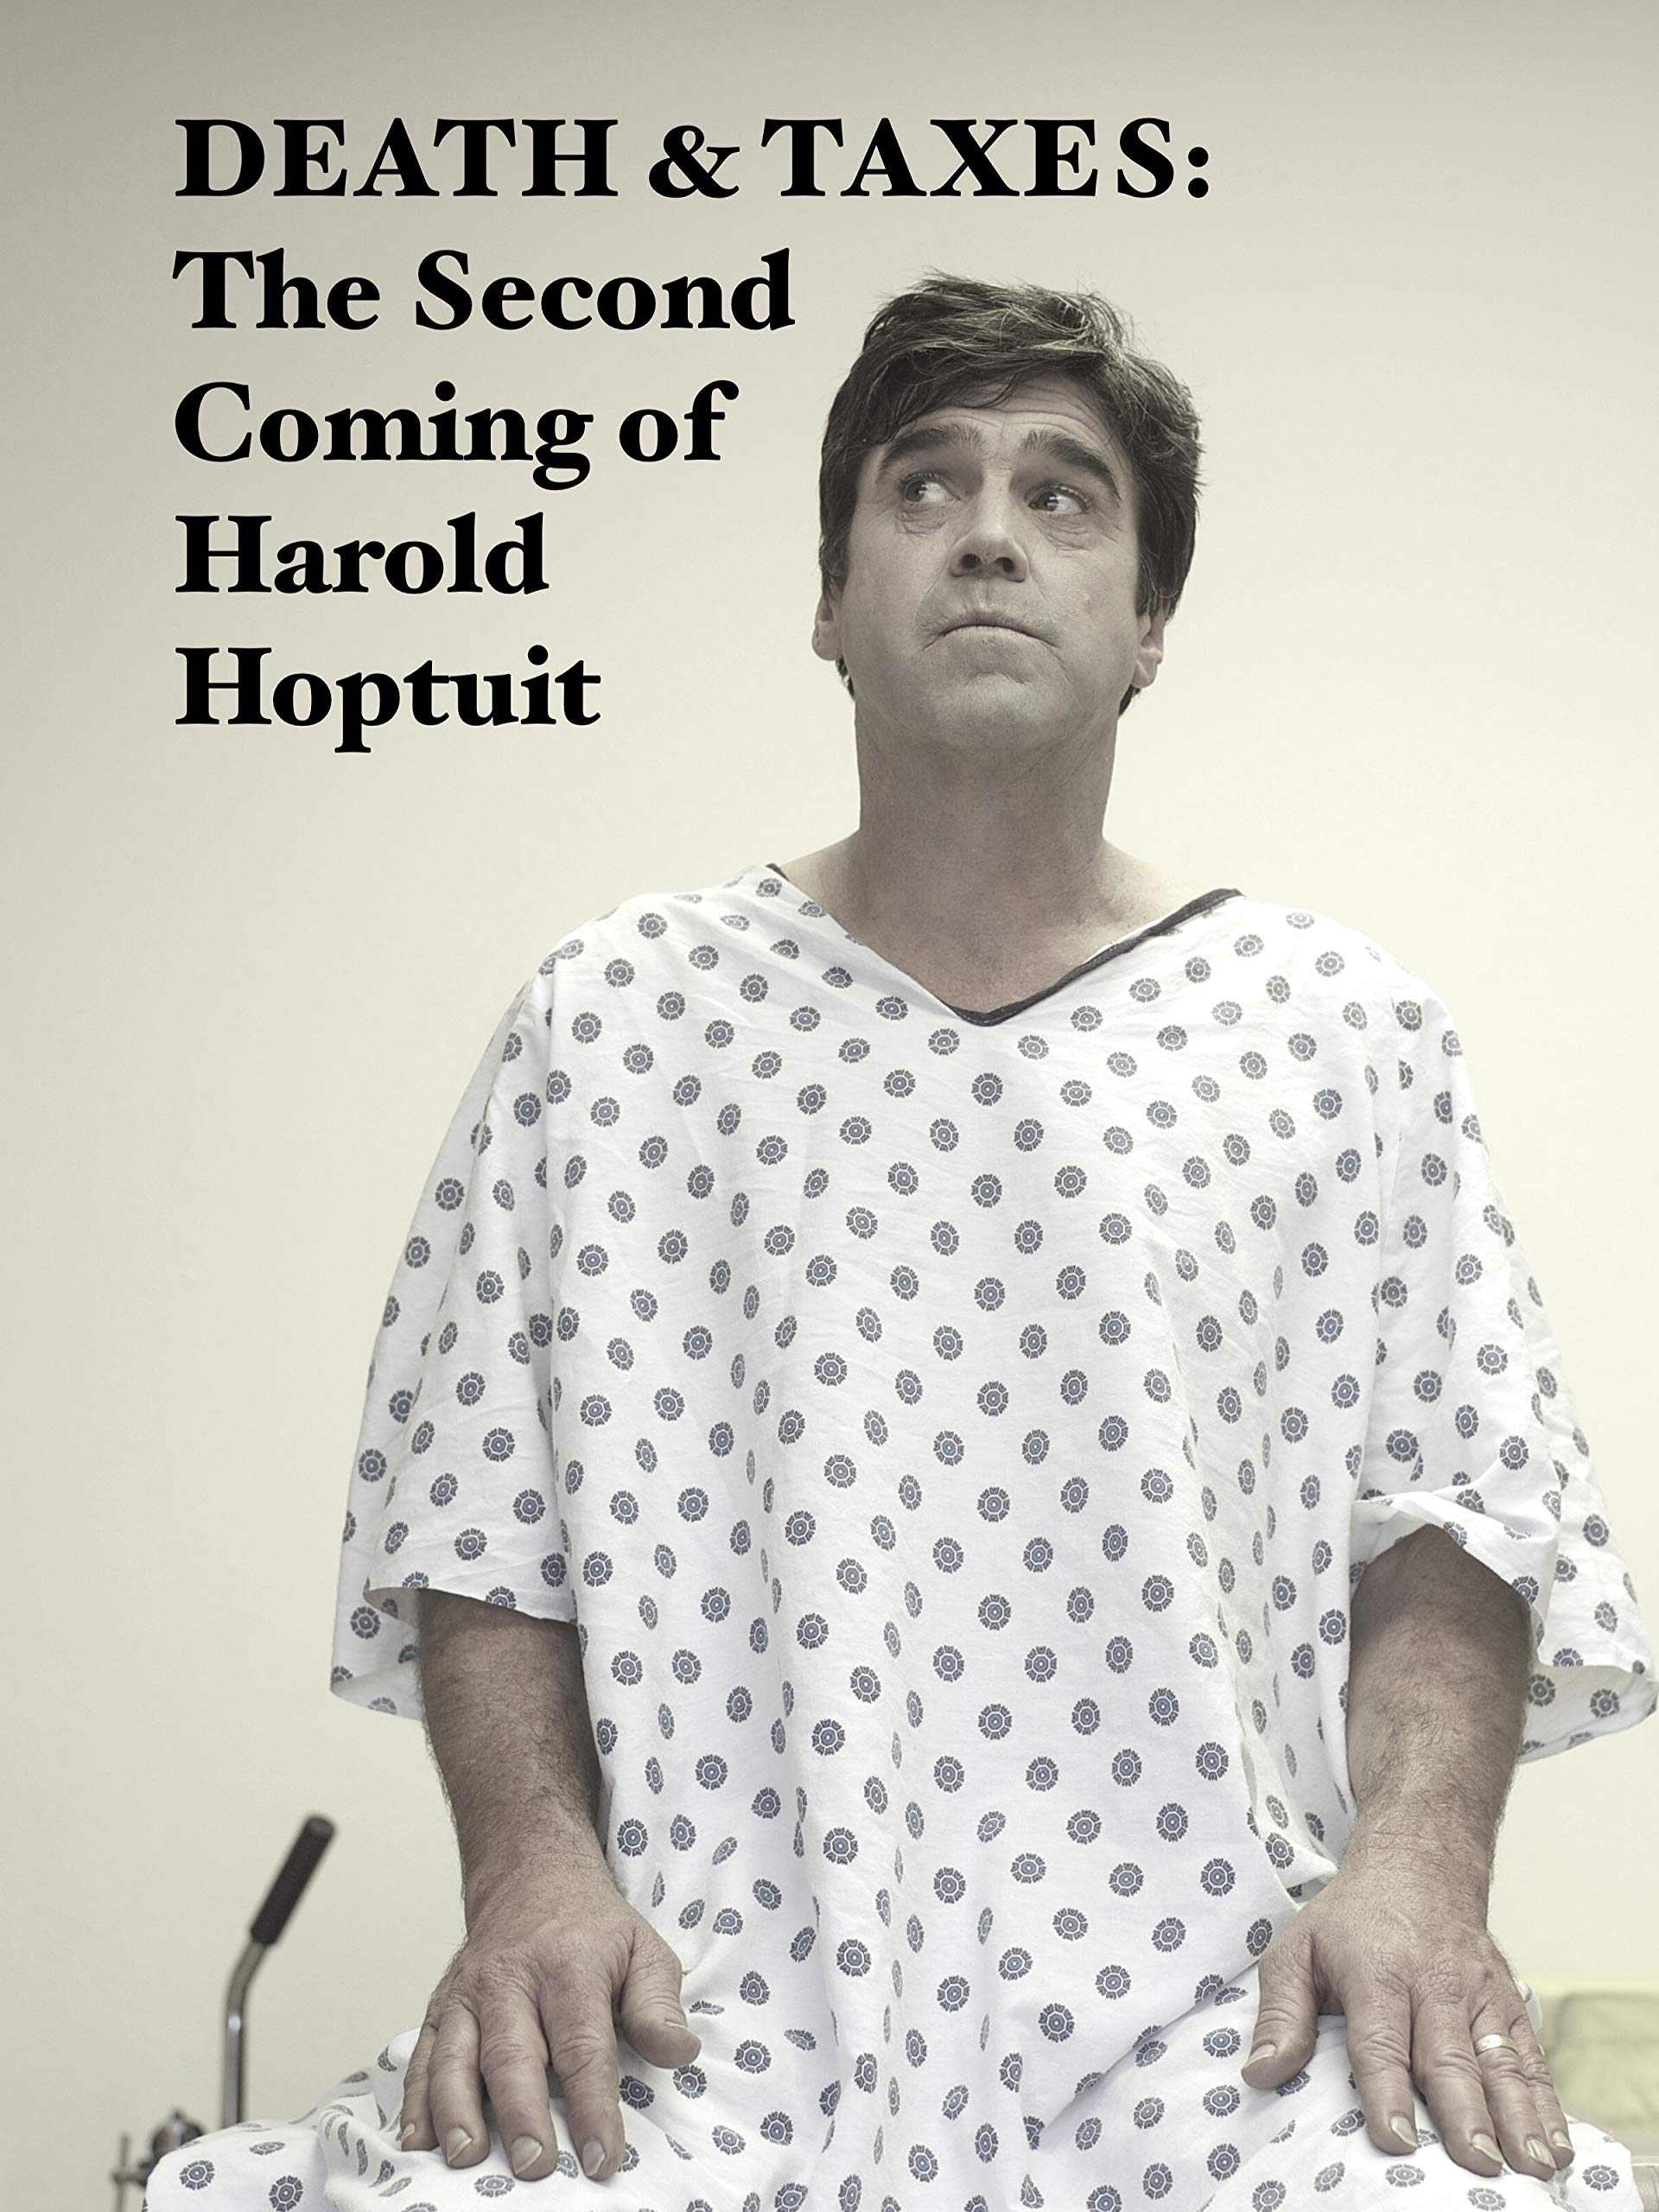 Death & Taxes: The Second Coming of Harold Hoptuit